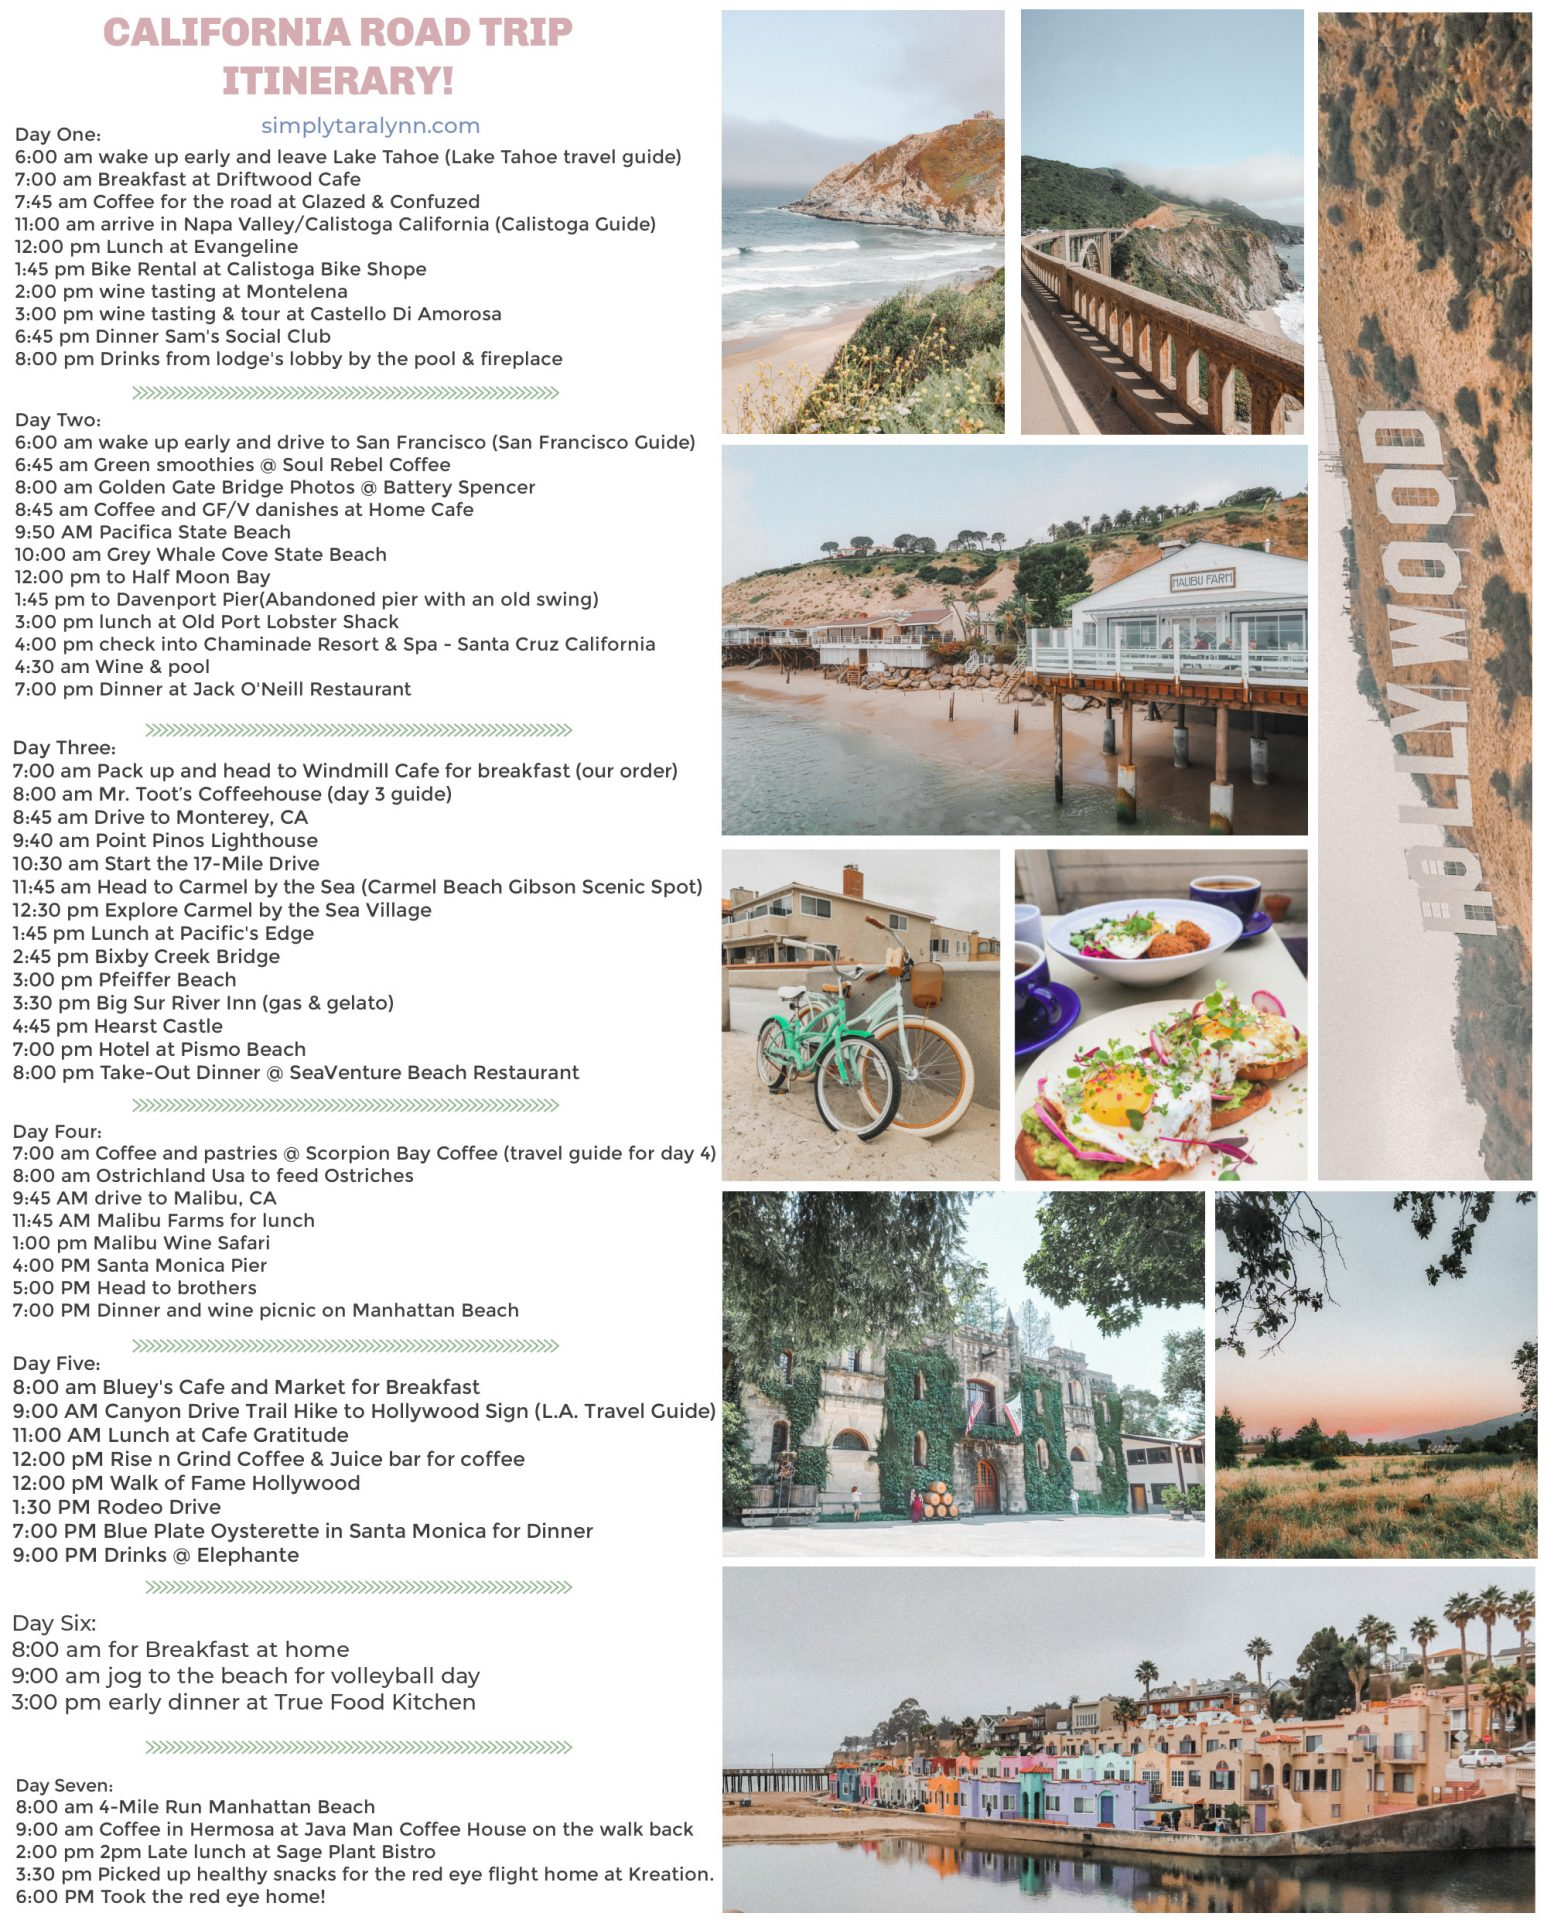 The ultimate California coast road trip, travel the coast of California, travel guide, California coast, traveling, highway 1, pacific coast highway, Napa, where to stay, where to eat, cliffs